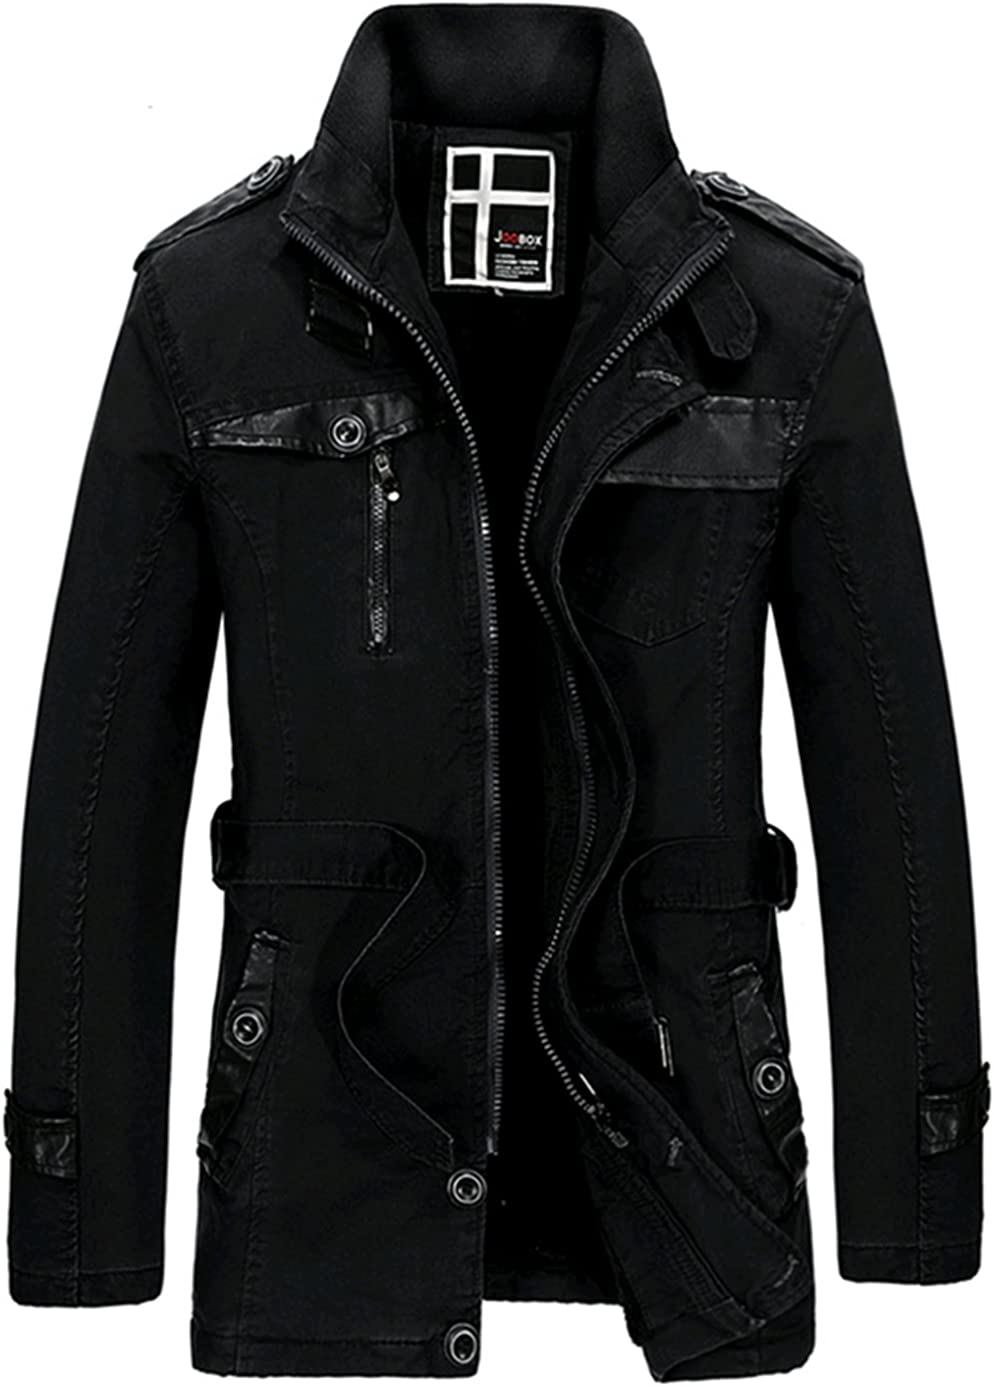 K3K Winter New Men Stand Collar Faux Fur Lined Long Trench Coats